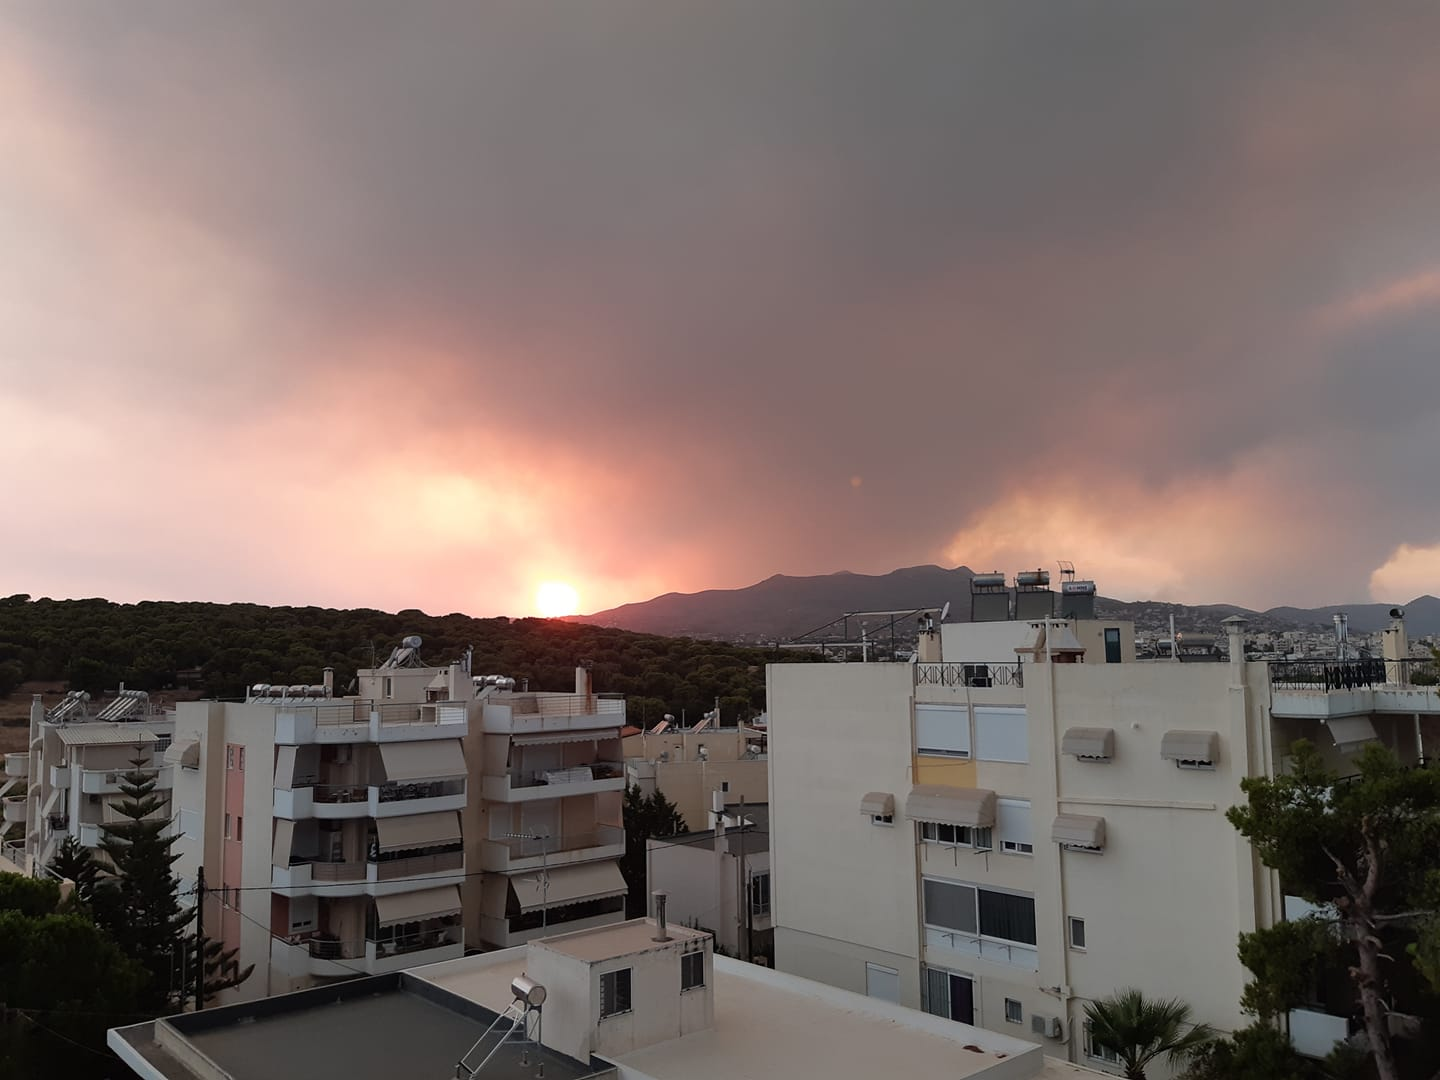 How to help for the wildfires in Greece summer 2021